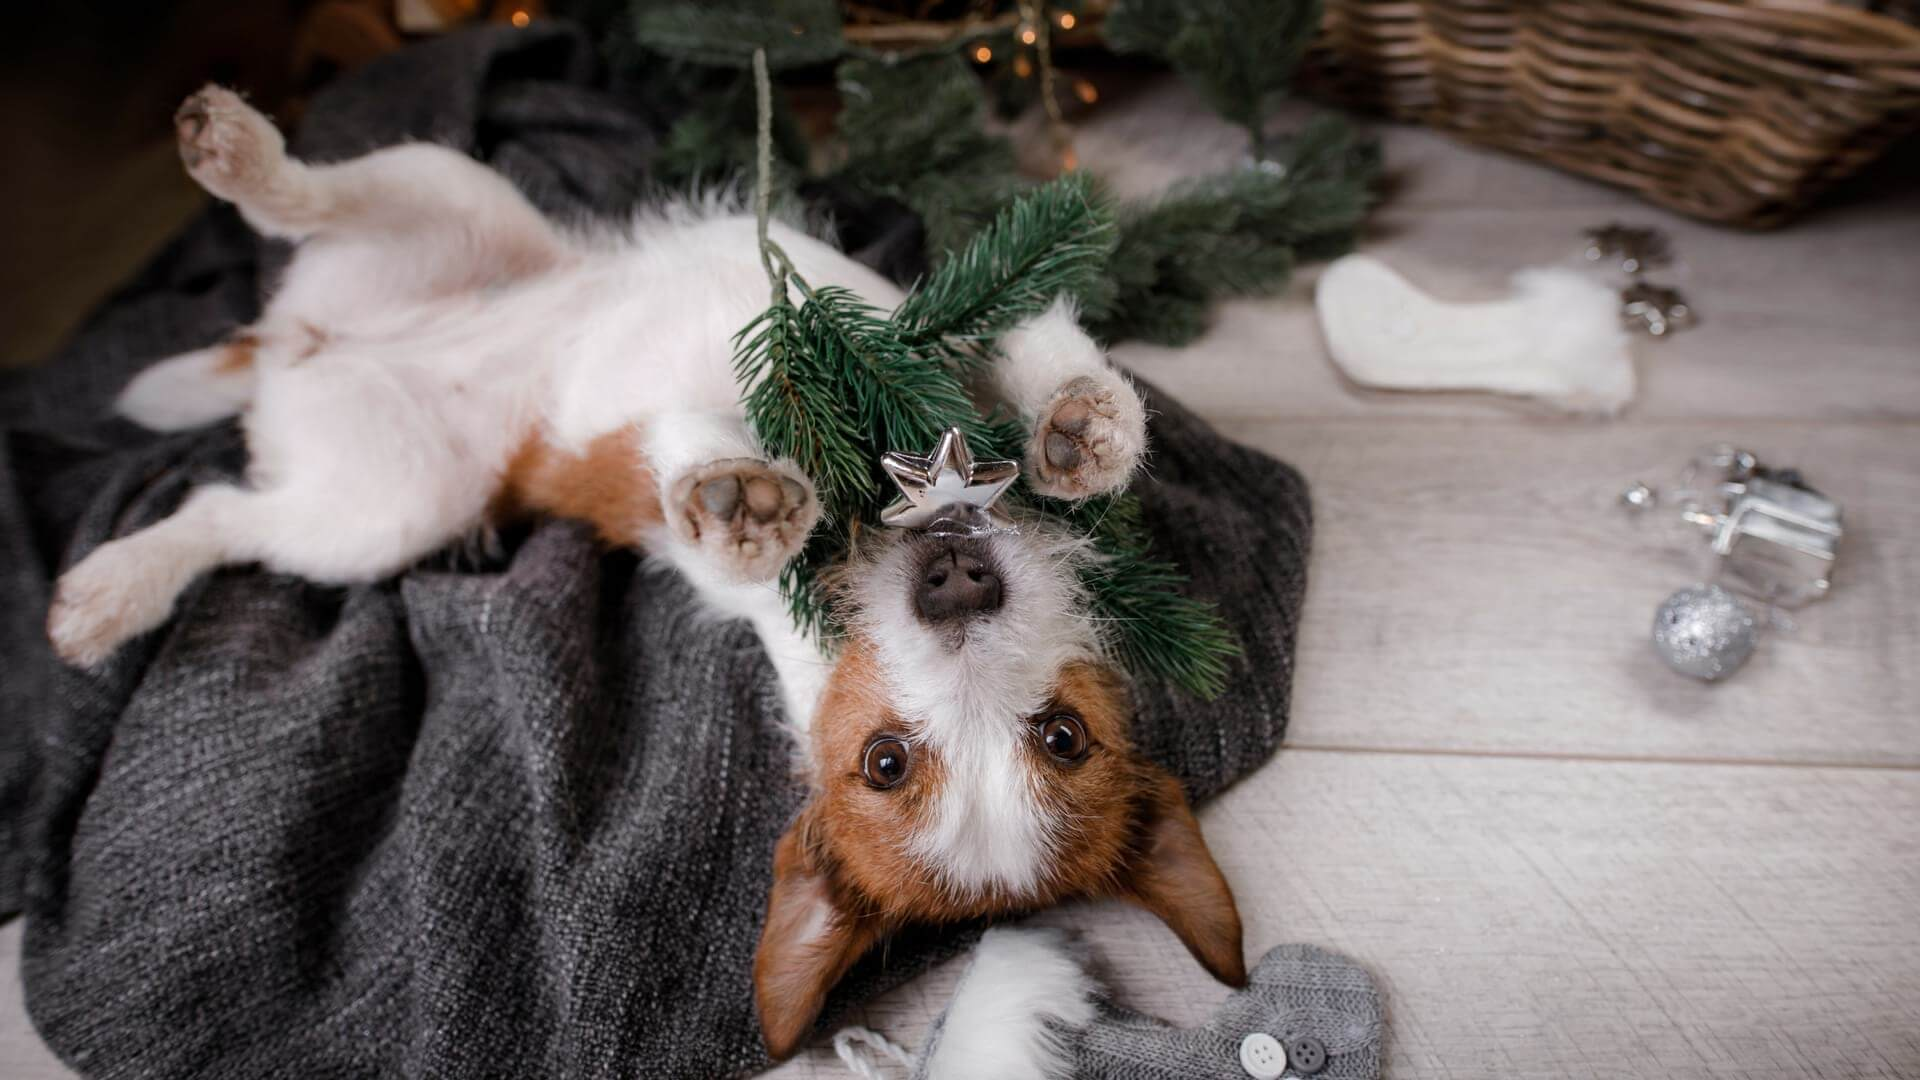 How do I keep my dog away from a Christmas tree?